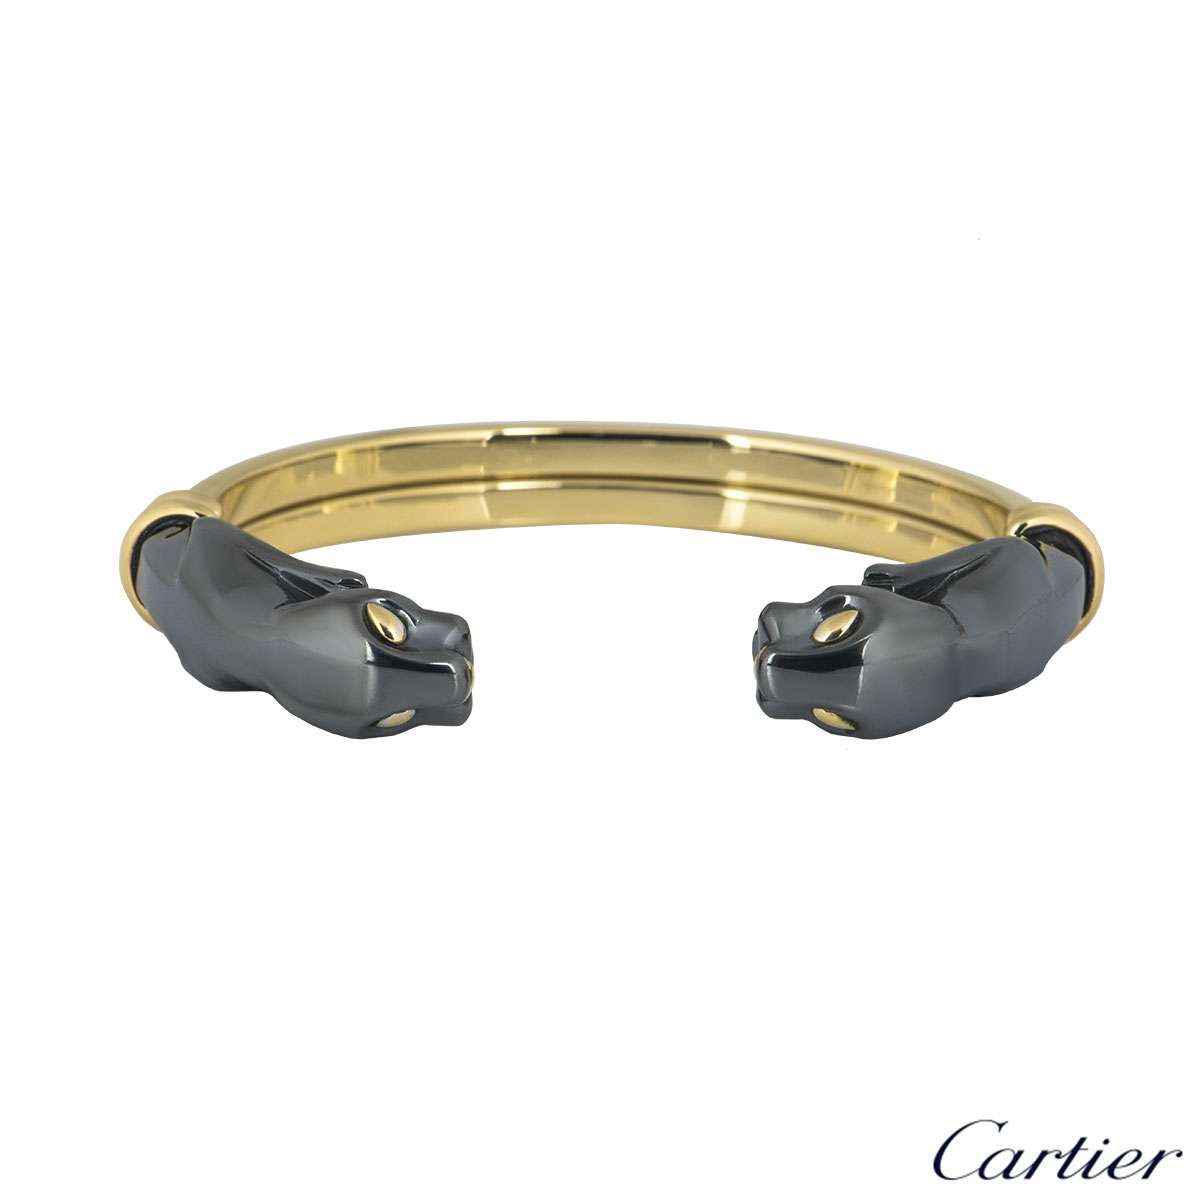 Cartier Yellow Gold & Hematite Panthere Cuff Bracelet